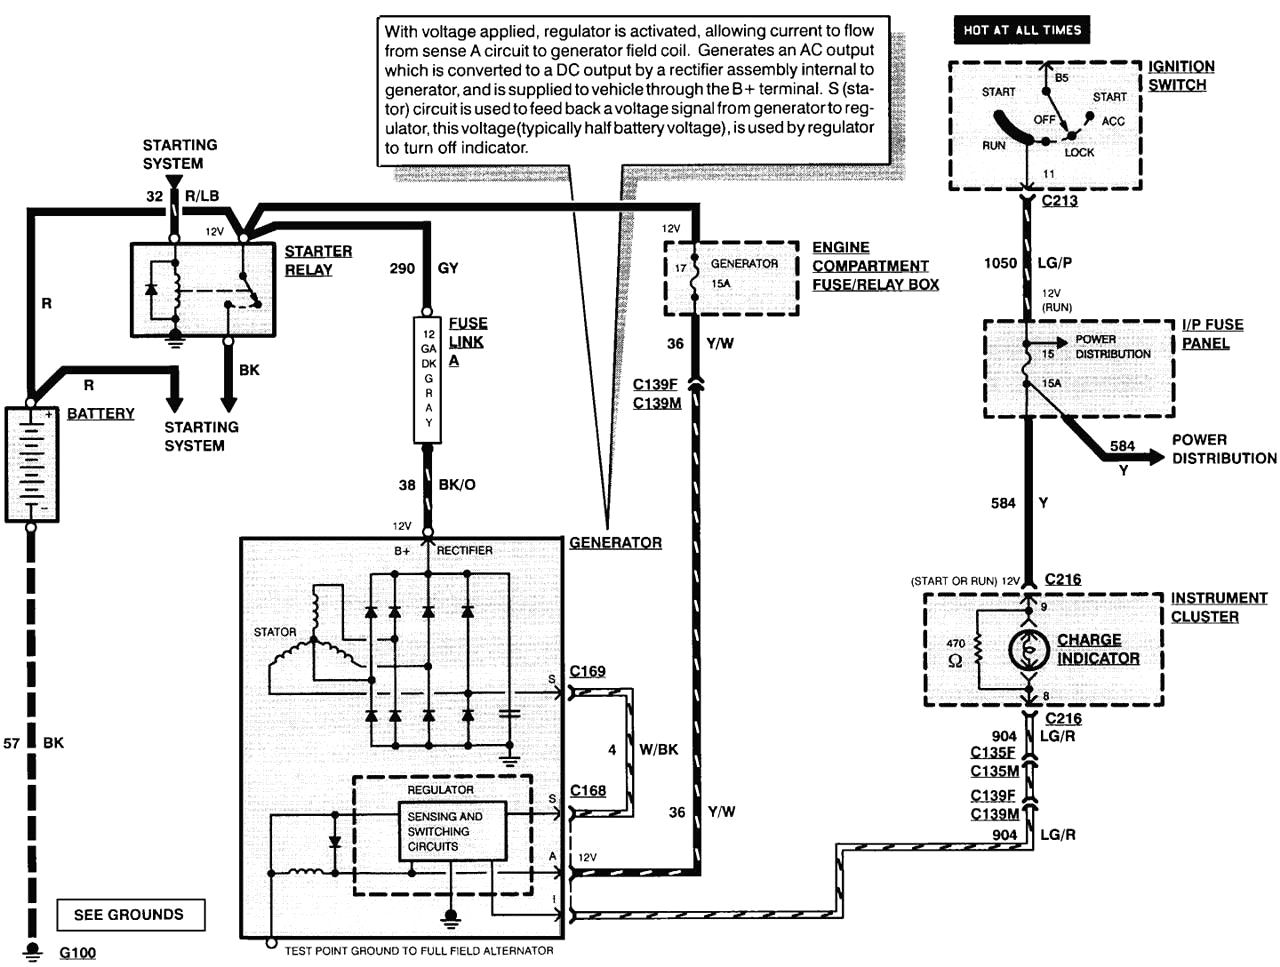 ford alternator wiring diagrams sut understand s and remarkable rh pinterest com